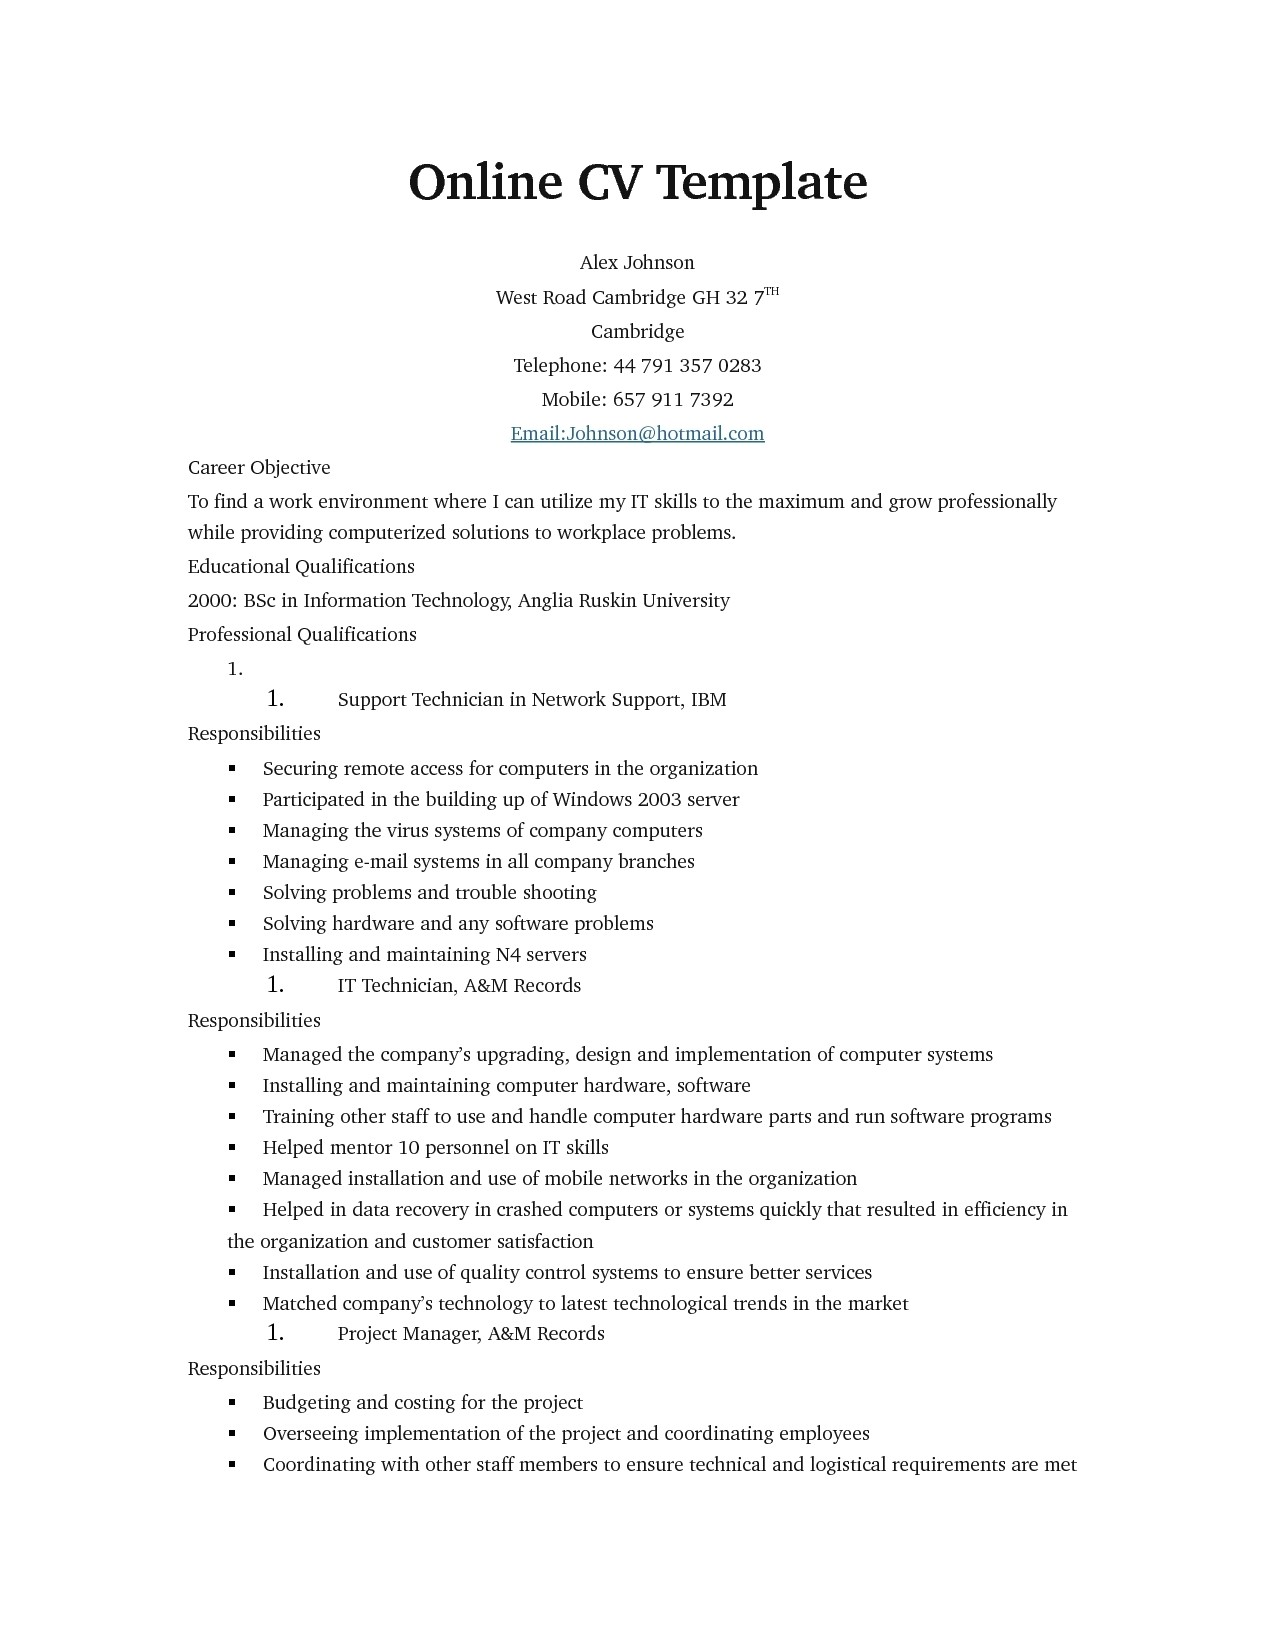 Free Resume Sample Templates Online Resume Templates Health Symptoms and Cure Com